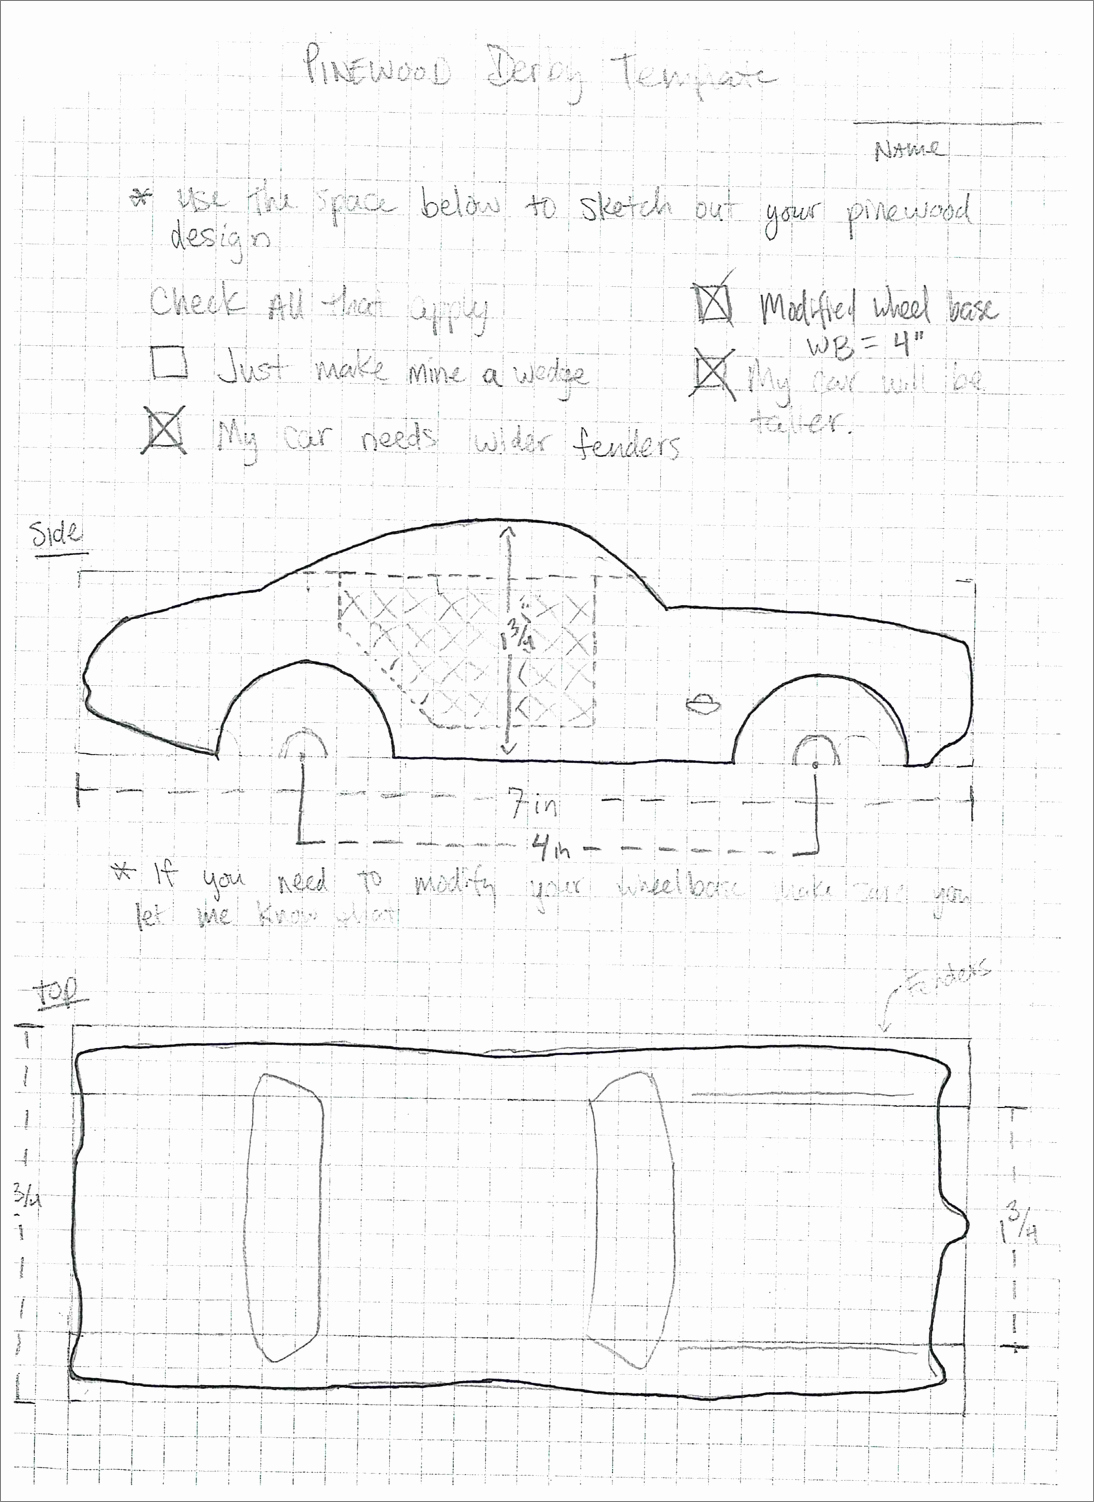 bonus sketchup assignment pinewood derby